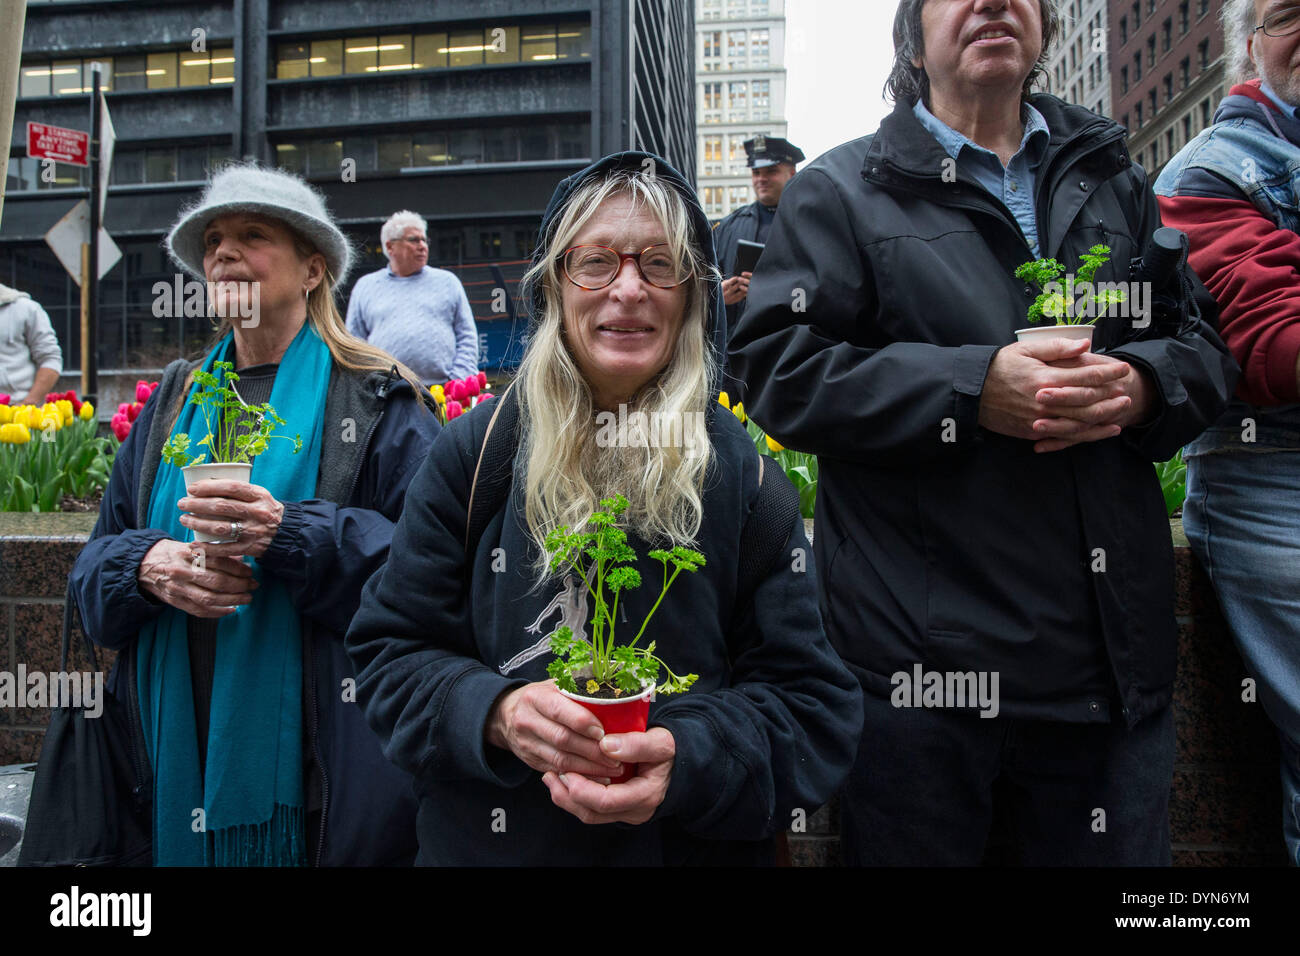 New York, USA. 22nd April 2014. Environmental activists attend a protest in Zuccotti Park on Earth Day. Protesters brought plants, and chanted ' System Change Not Climate Change, ' taking aim at large corporations who do not adhere to environmental concerns. These protesters also expressed that capatilisim exploitation of nature is the flip side to exploitation of human labor. Credit:  Scott Houston/Alamy Live News - Stock Image